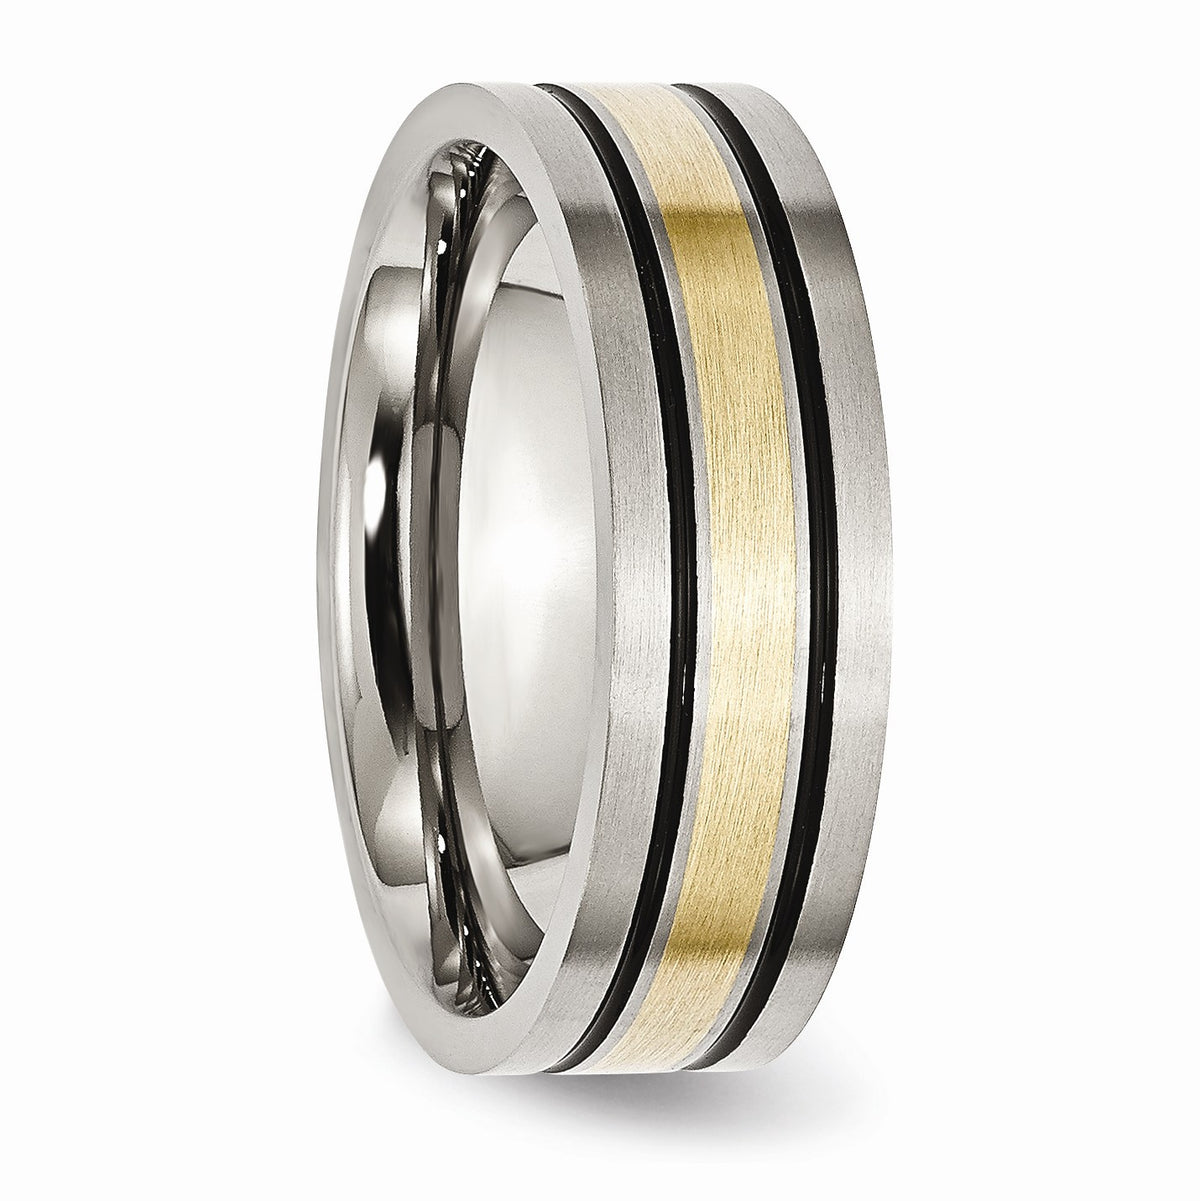 Alternate view of the Titanium & 14K Gold Inlay, 7mm Flat Brushed & Antiqued Band by The Black Bow Jewelry Co.